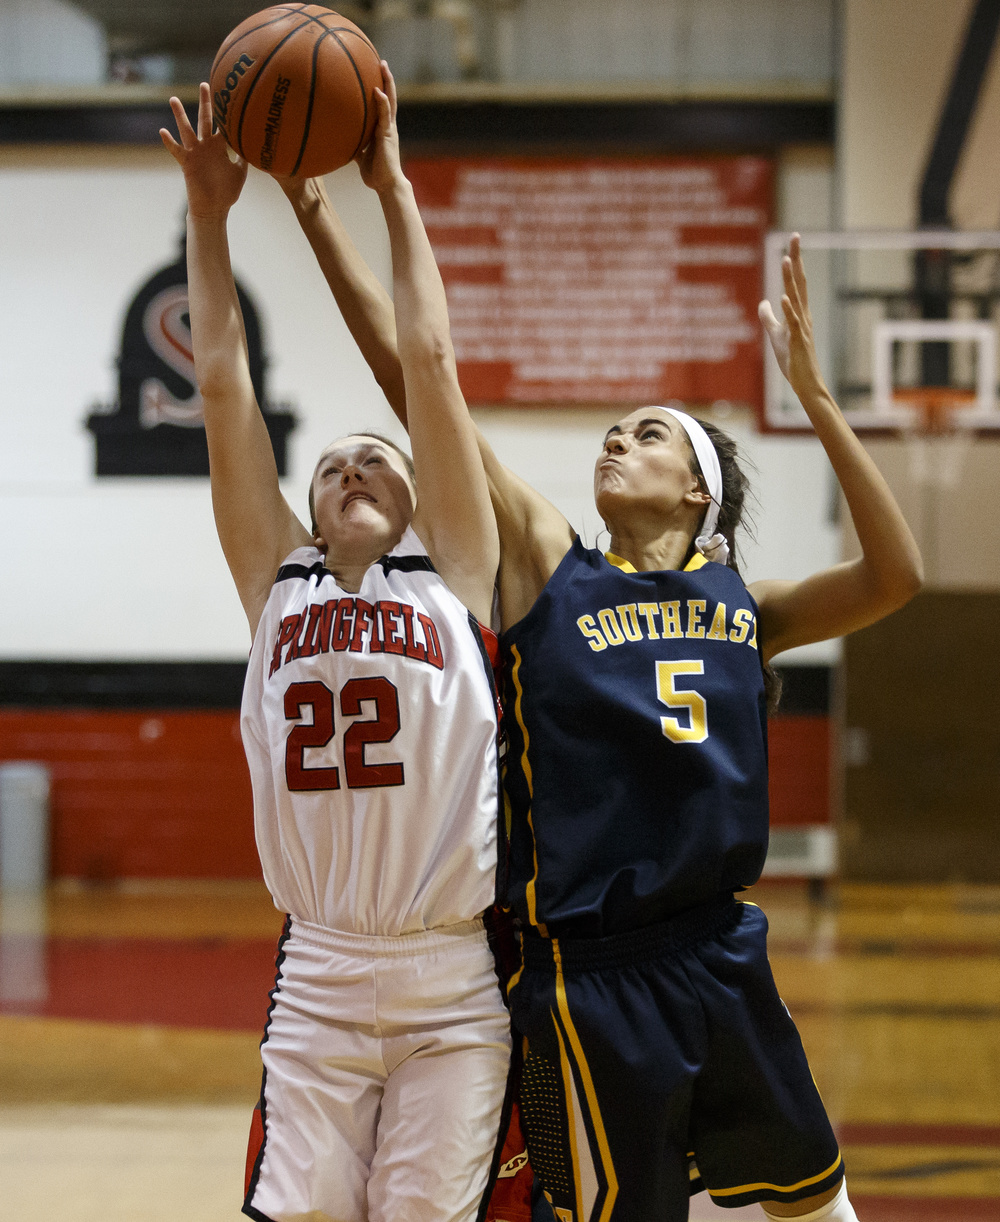 Springfield's Sarah Cross (22) goes for a rebound against Southeast's Lunden Henry (5) in the second half at Springfield High School, Thursday, Dec. 10, 2015, in Springfield, Ill. Justin L. Fowler/The State Journal-Register